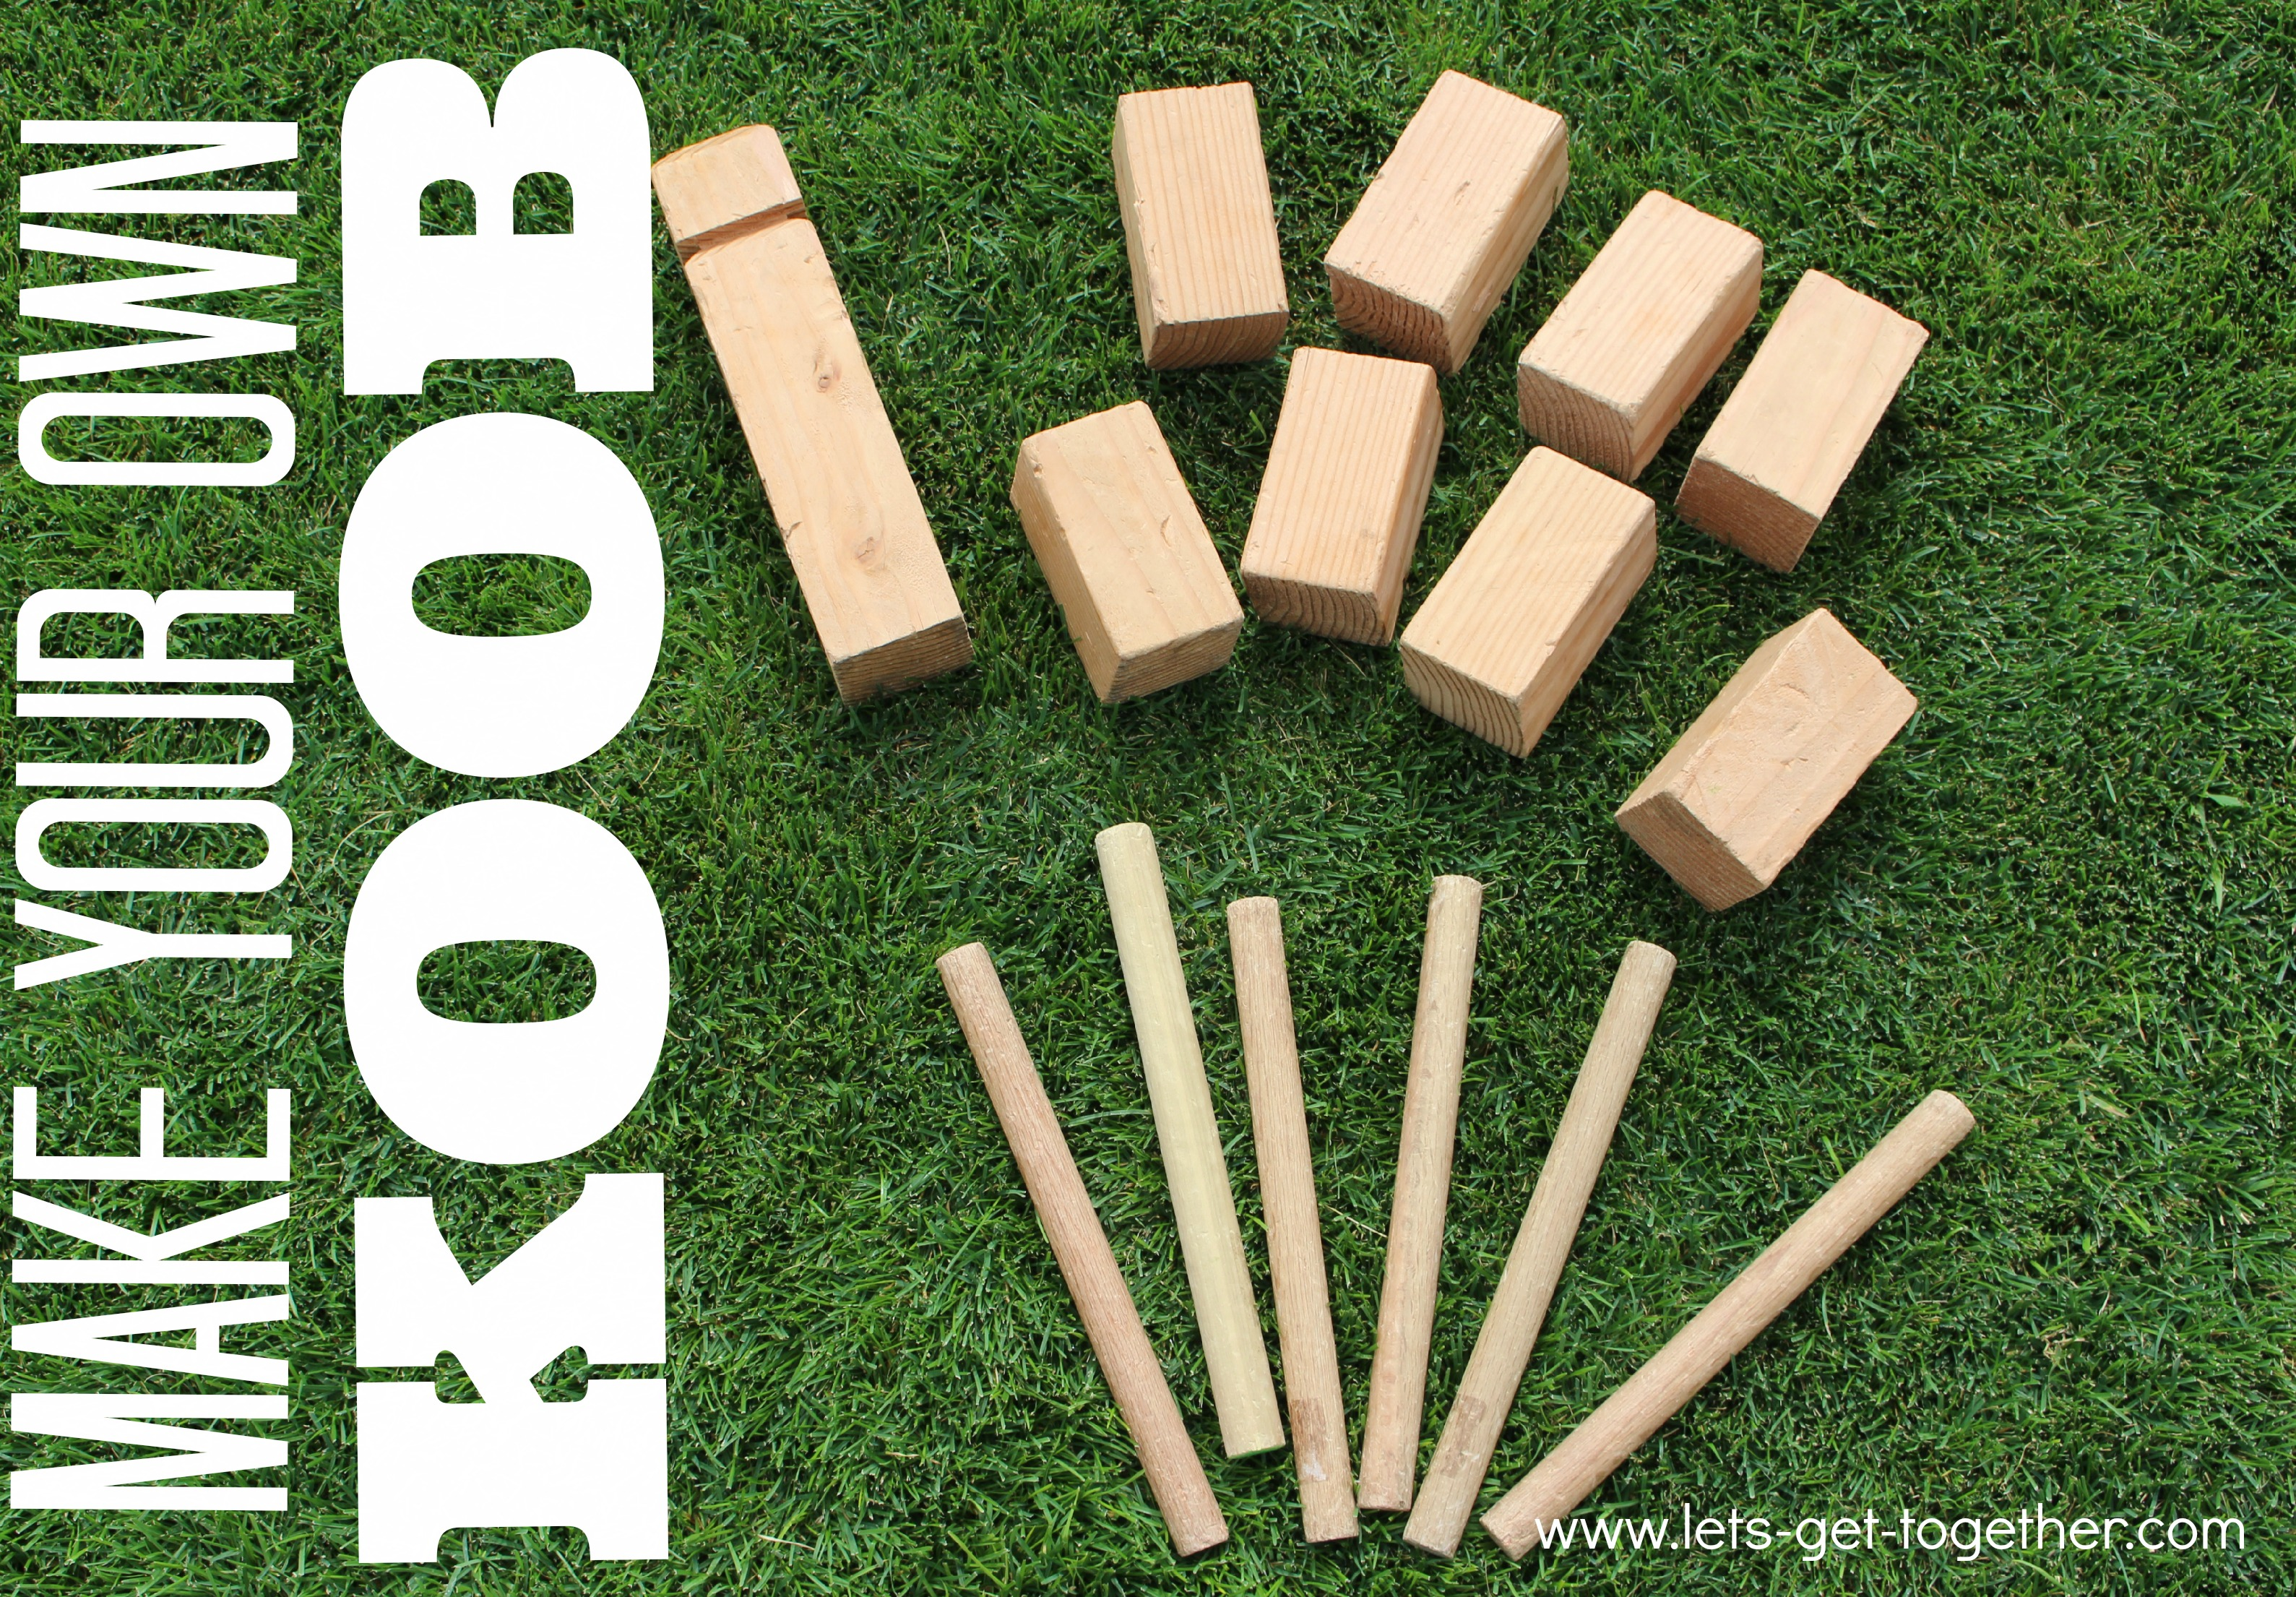 DIY KOOB The Best Lawn Game Ever